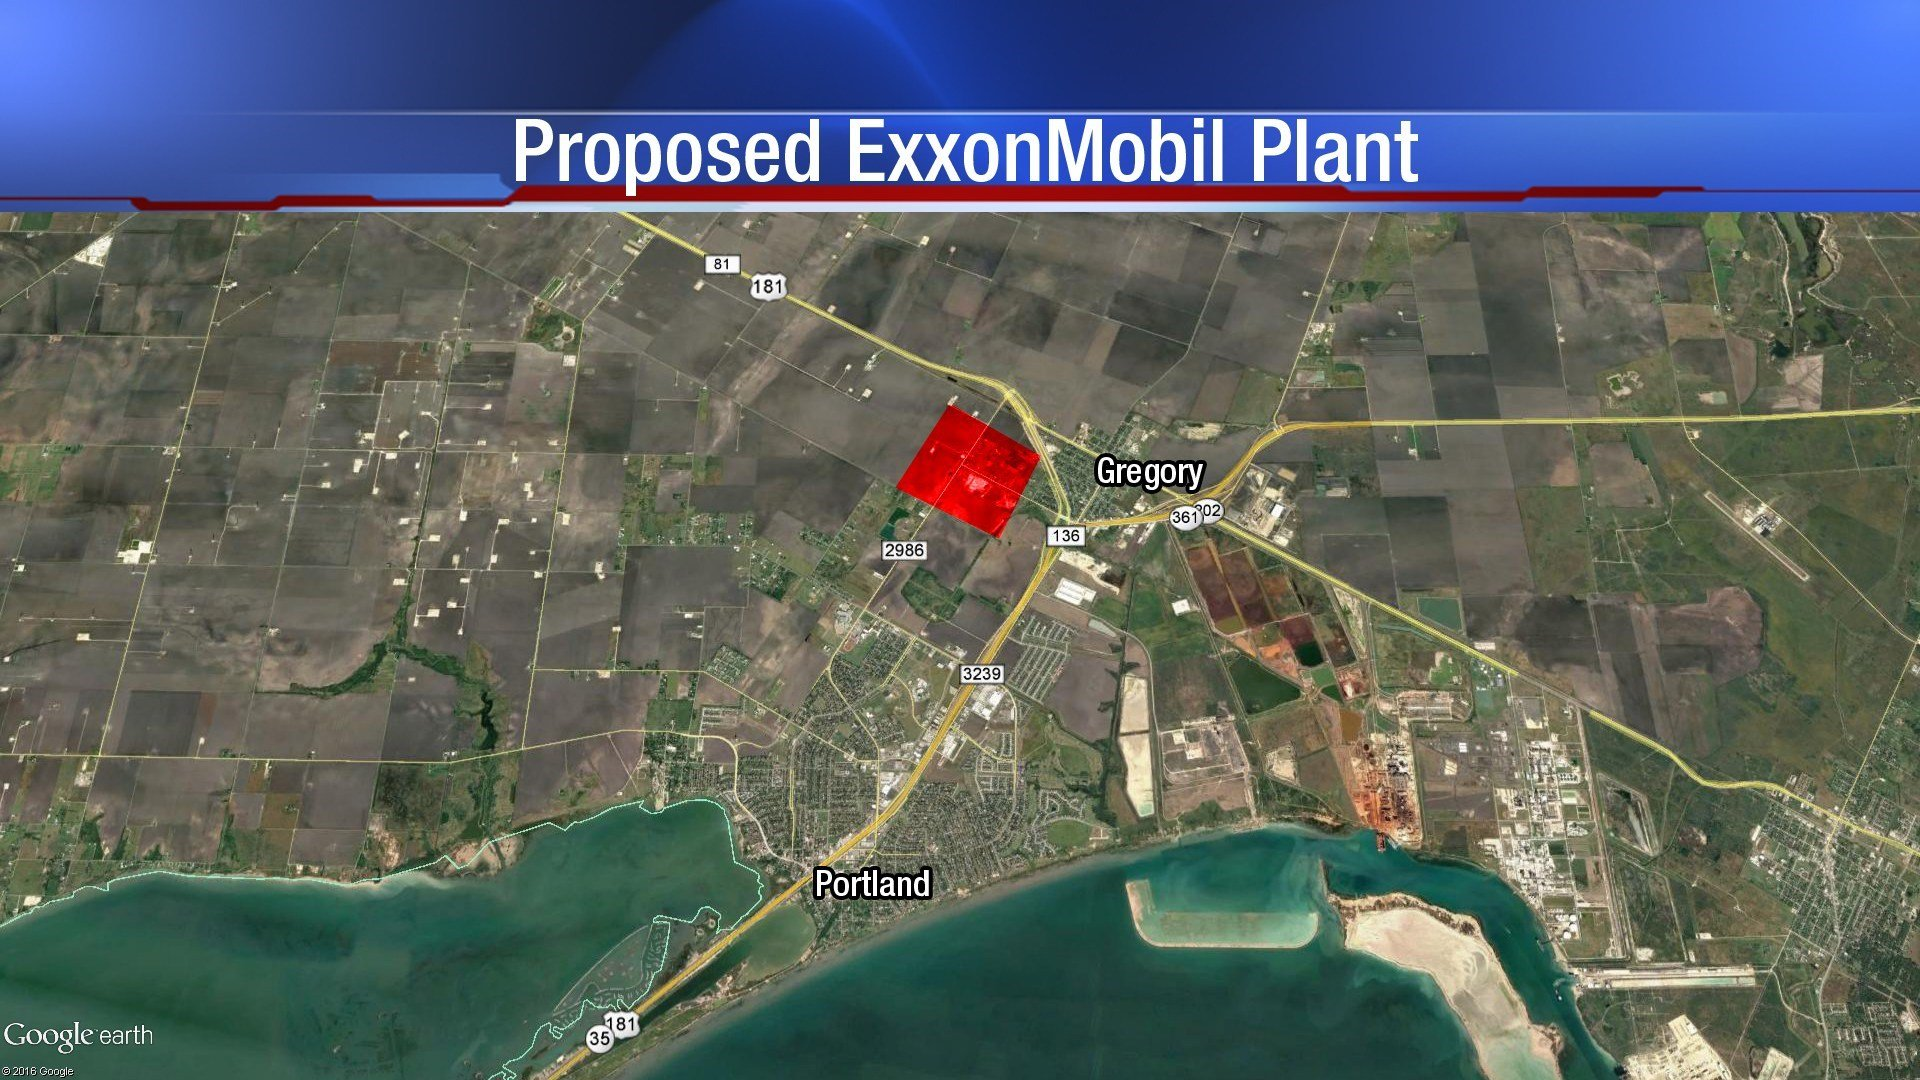 Exxon Mobil plans $10B petrochemical plant near Texas coast